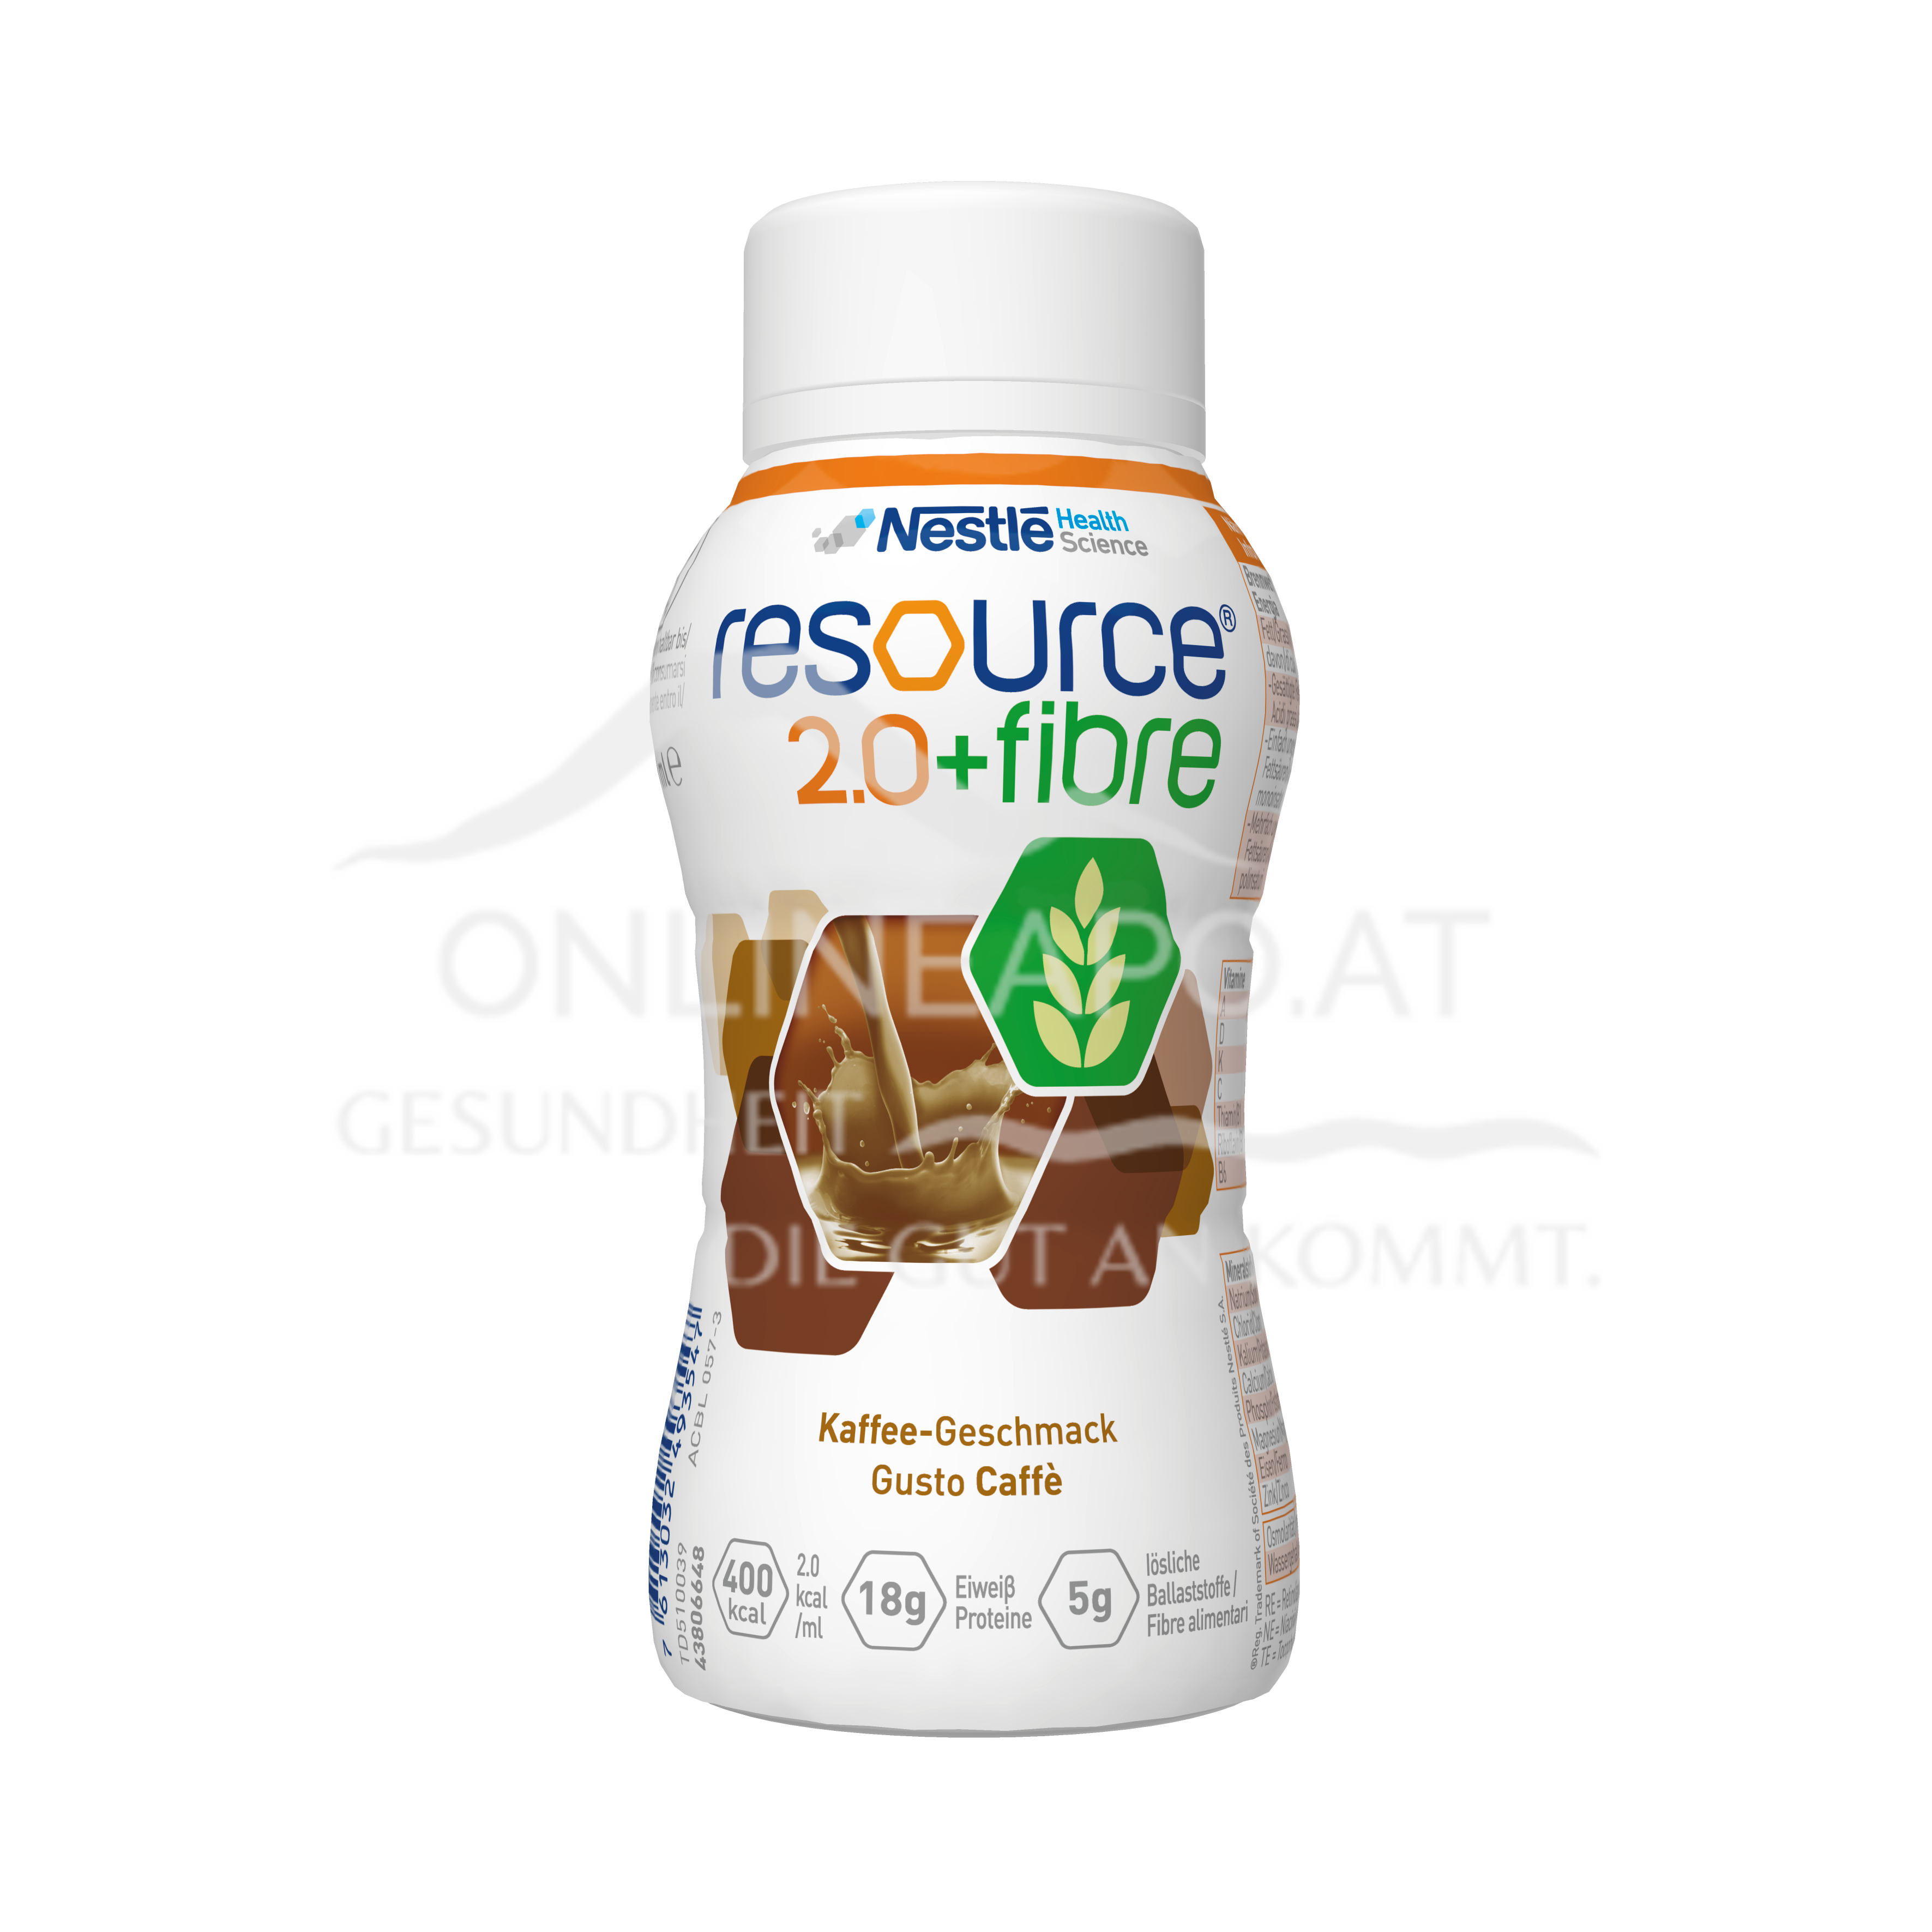 Resource® 2.0 + fibre Kaffee 4x200ml